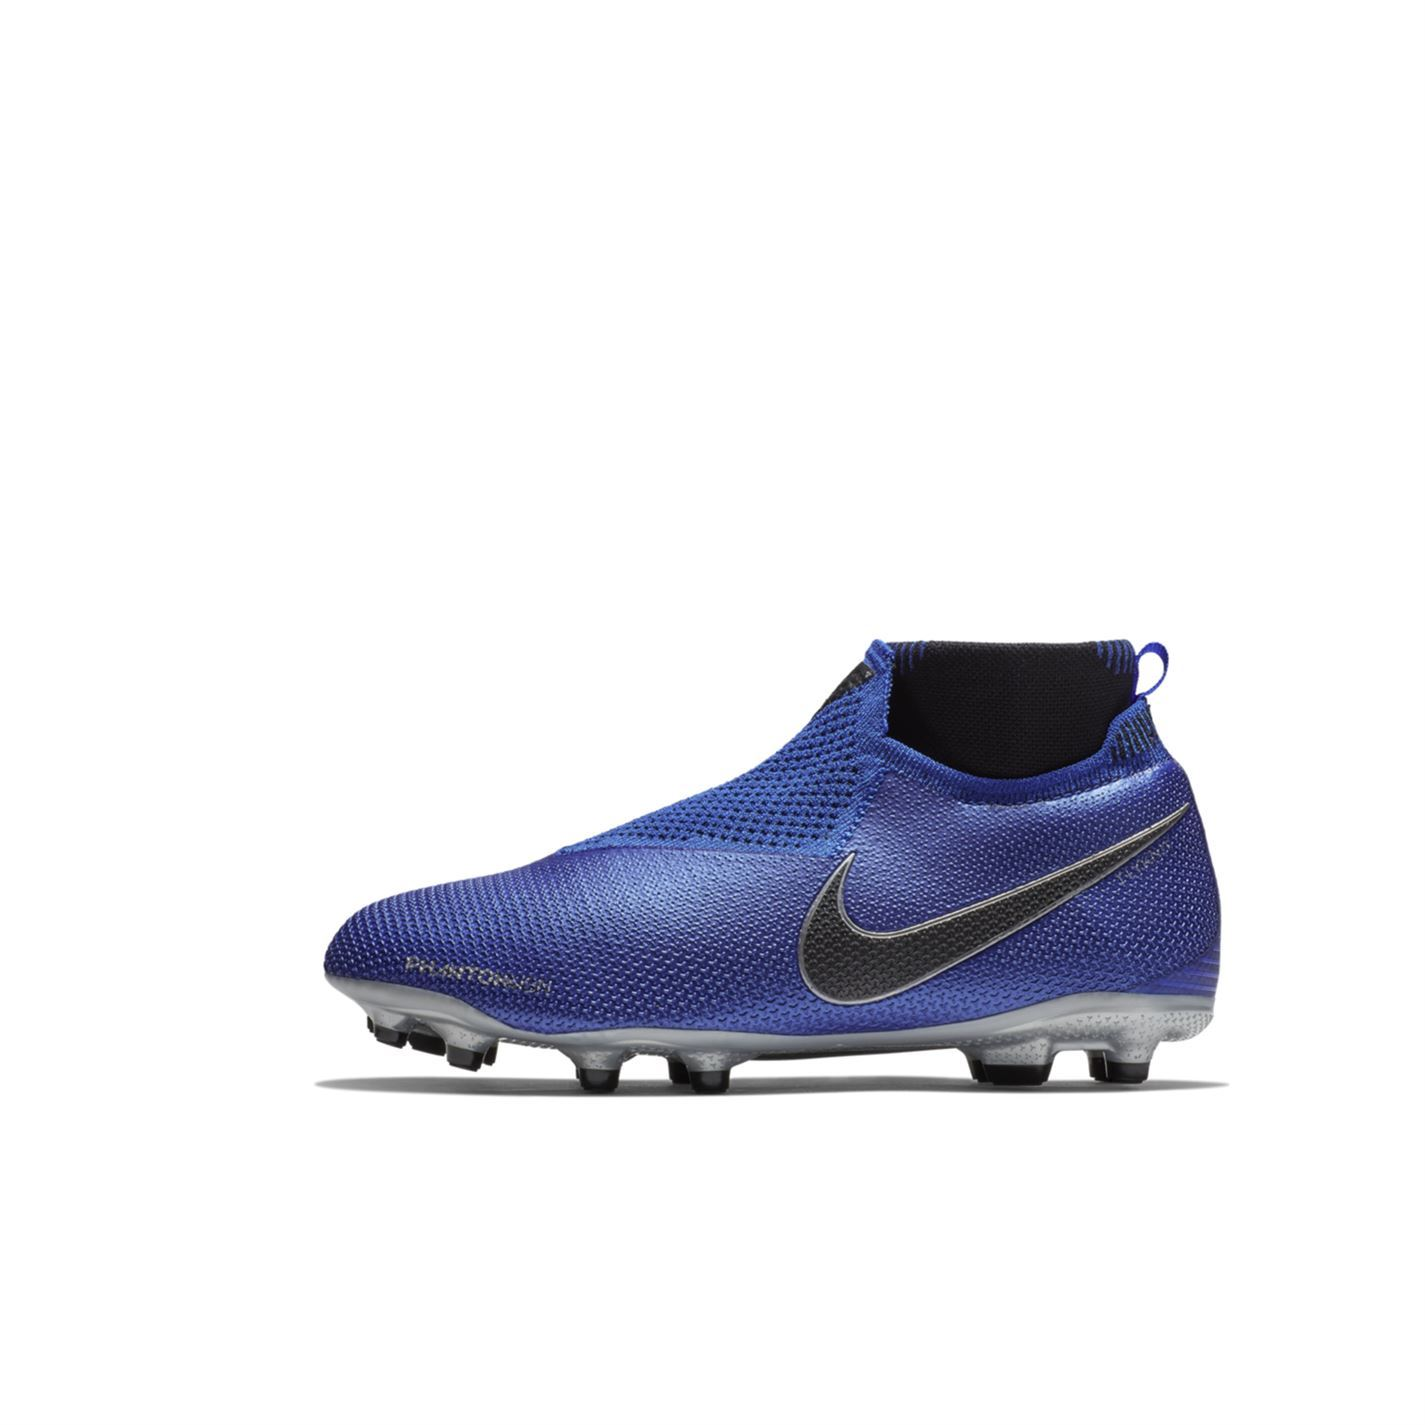 new concept 48d02 49586 ... Nike Phantom Vision Elite DF FG Firm Ground Football Boots Juniors  Soccer Cleats